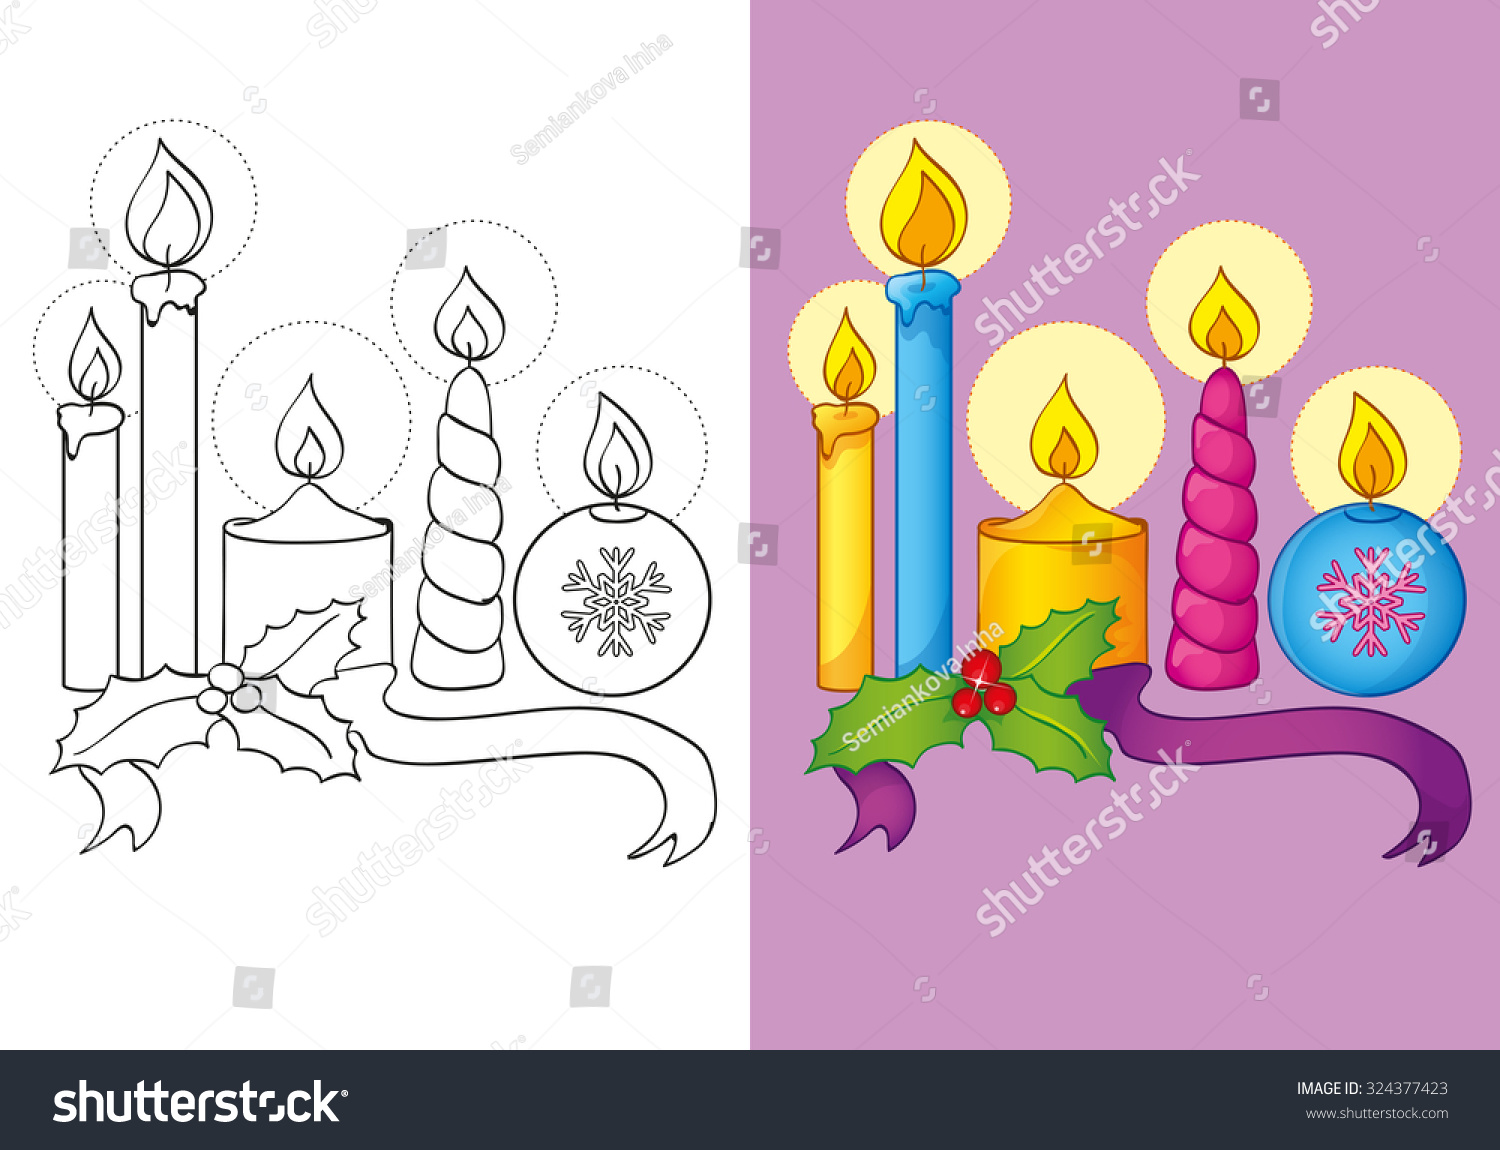 Coloring Book Or Cartoon Illustration Of Christmas Candles For Children